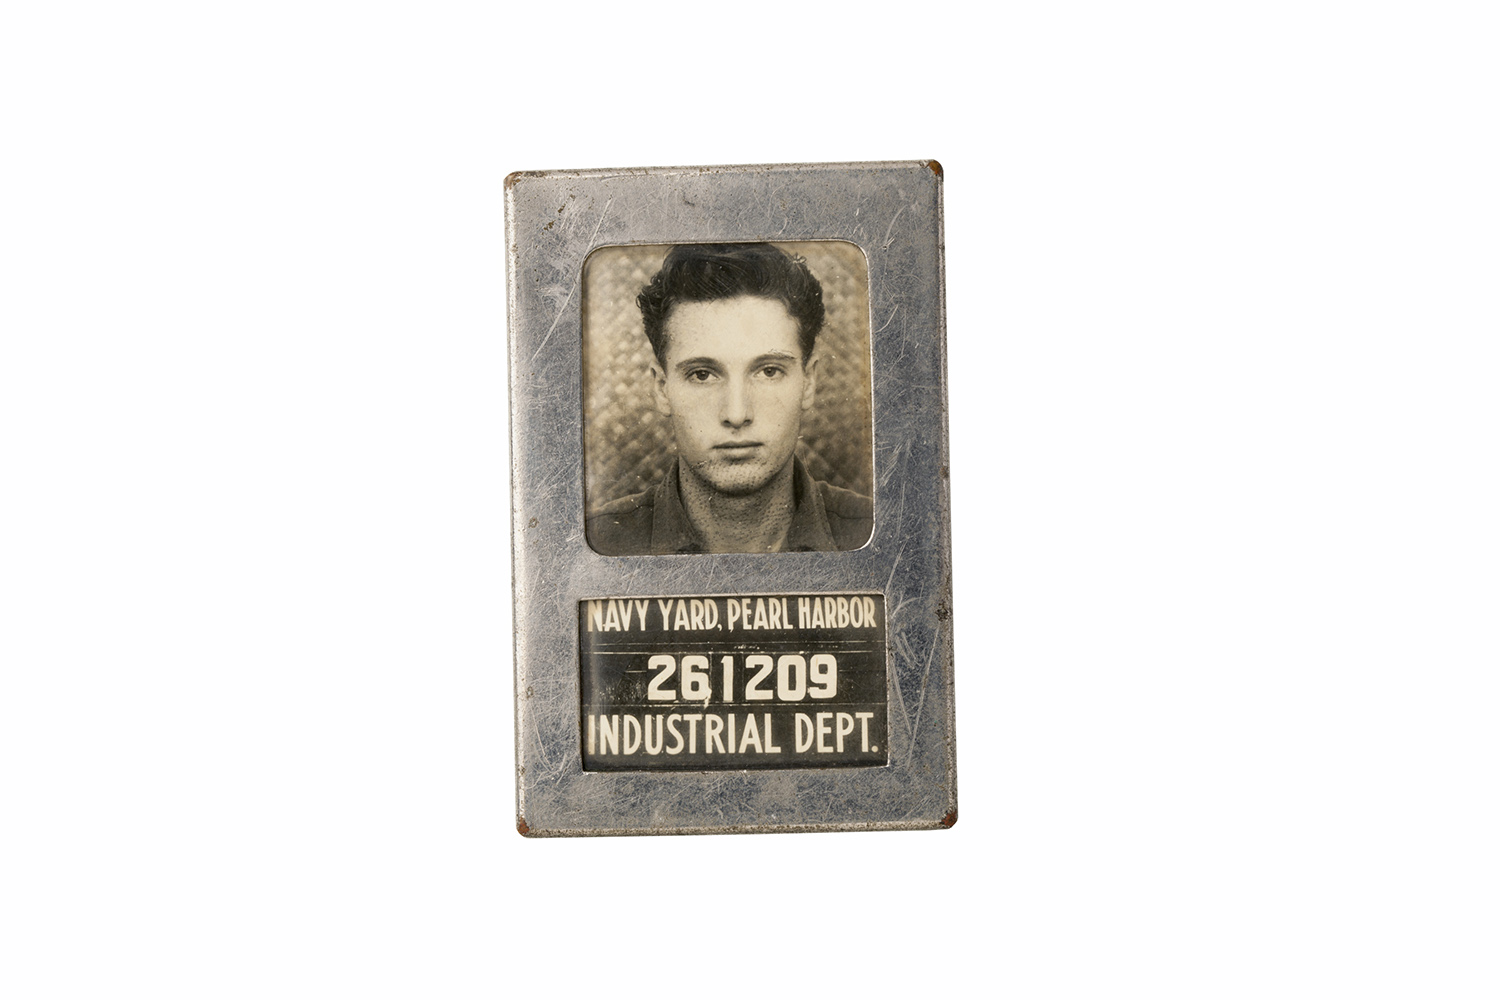 The ID badge of an employee at the Pearl Harbor Navy Yard.